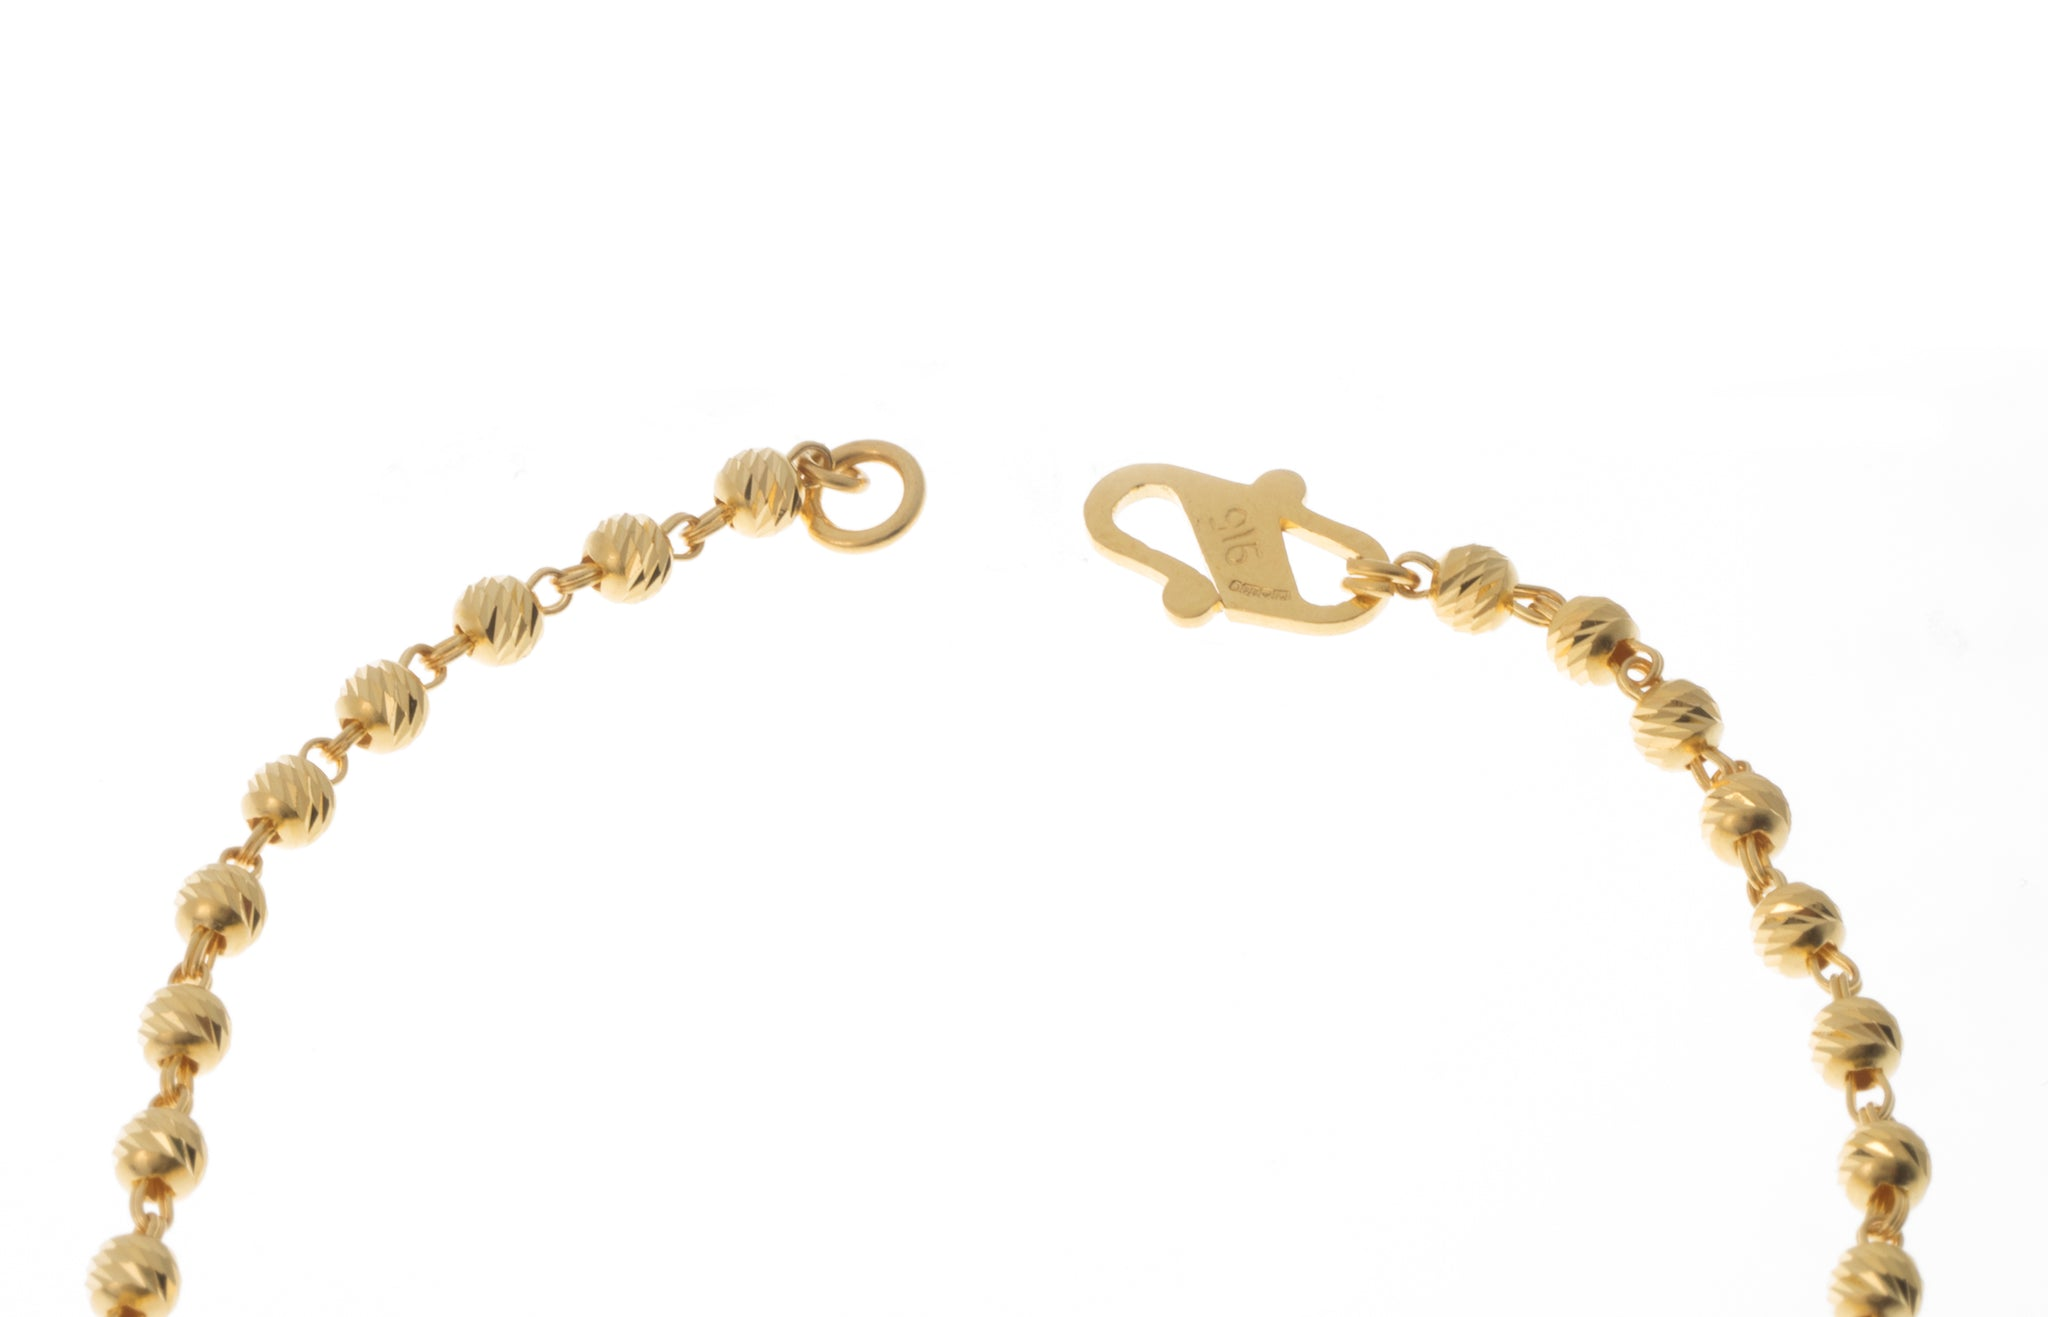 22ct Gold Bracelet with Diamond Cut Design (4.8g) LBR-7393